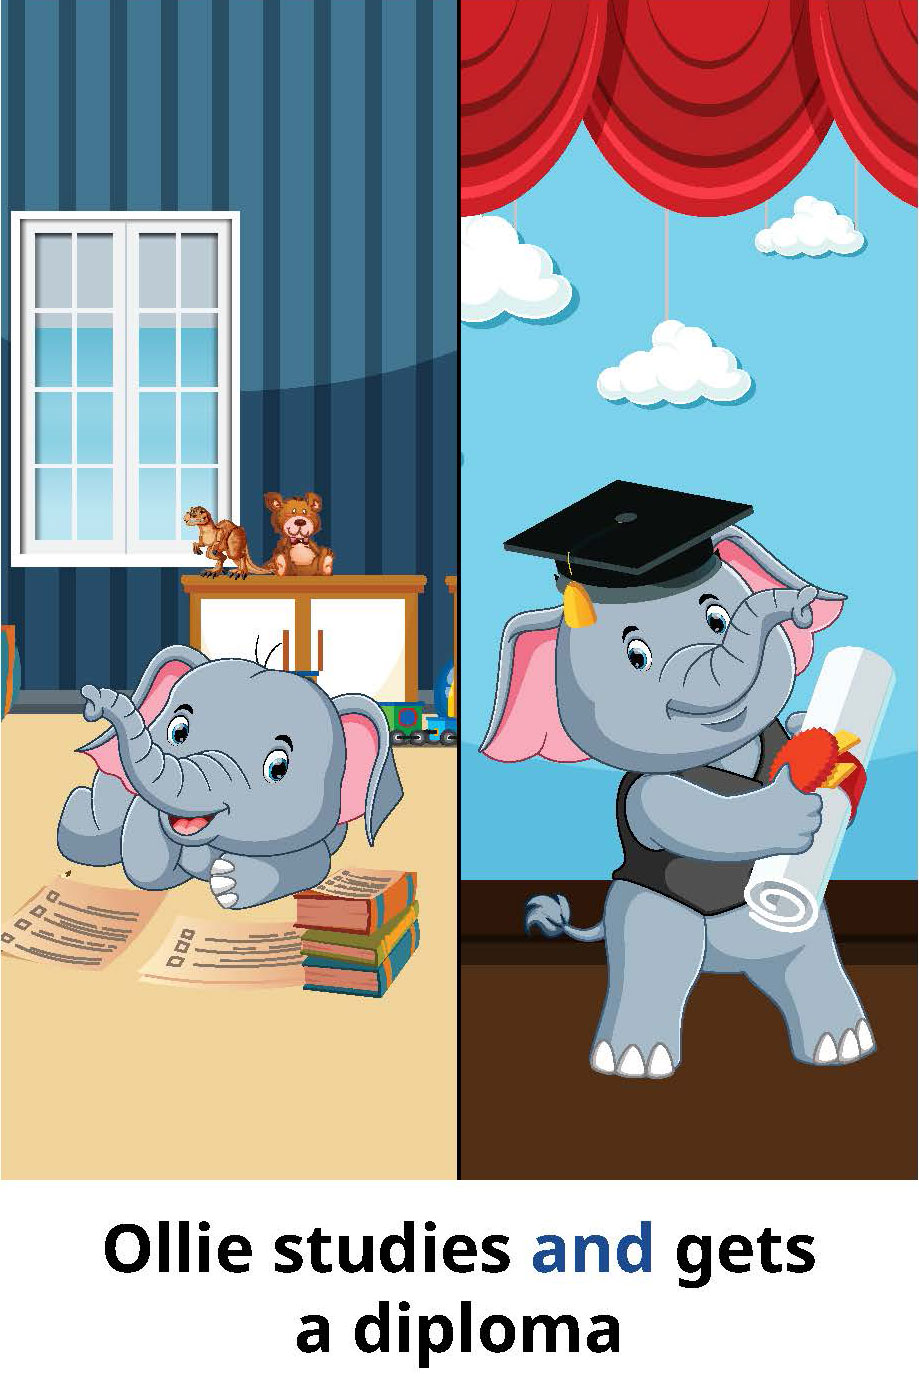 Ollie studies and gets a diploma